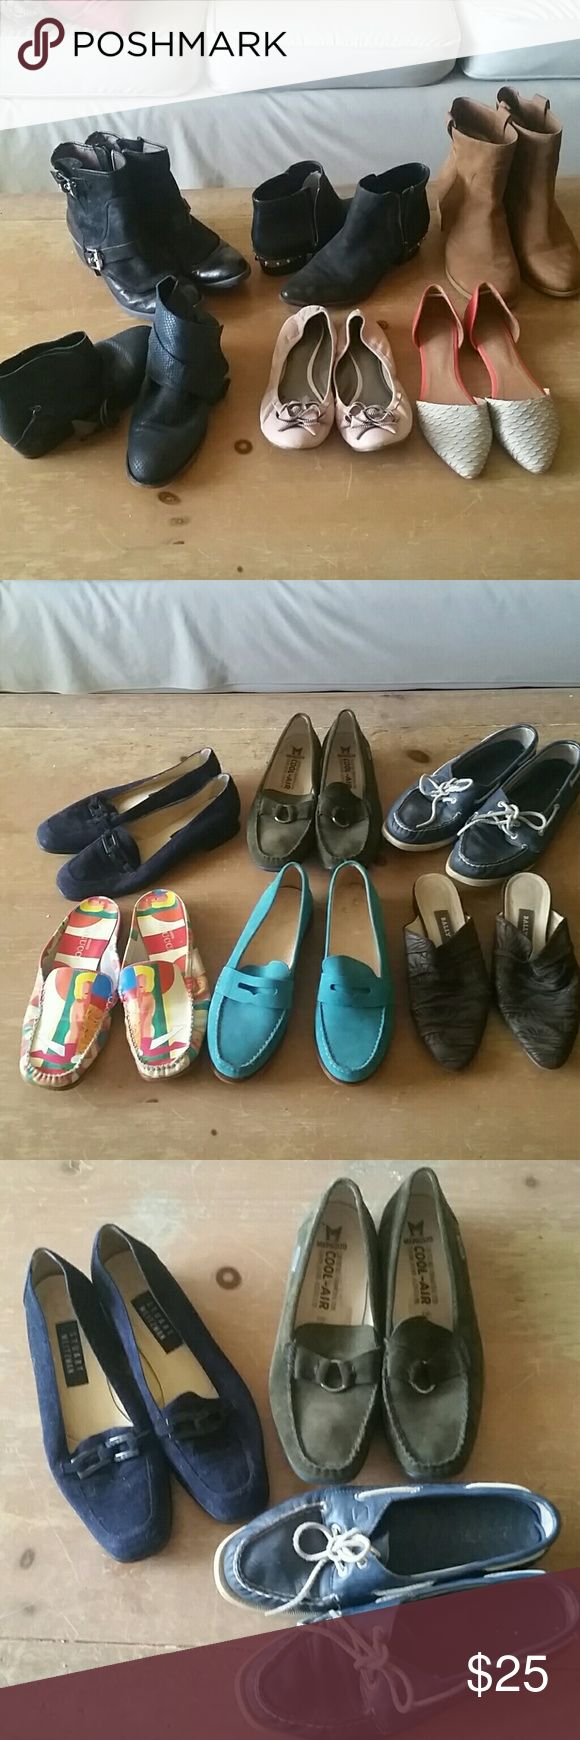 Designer Shoe Sale Sizes 8.5-9.5 $25/ for most I had lots of money and I bought lots and lots of shoes and boots. Flats from Bally, Jeffrey Campbell, Frye, and Cole-Haan. Most are size 9 but a few are beat up and would fit a 10. Others are 8.5 or narrow. ALL PAIRS $25 OR LESS. Boots are from Eileen Fisher, Donald J. Pliner, Geox and Circus from Sam Edelman. Message me for questions on particular pairs. Cole Haan Shoes Ankle Boots & Booties